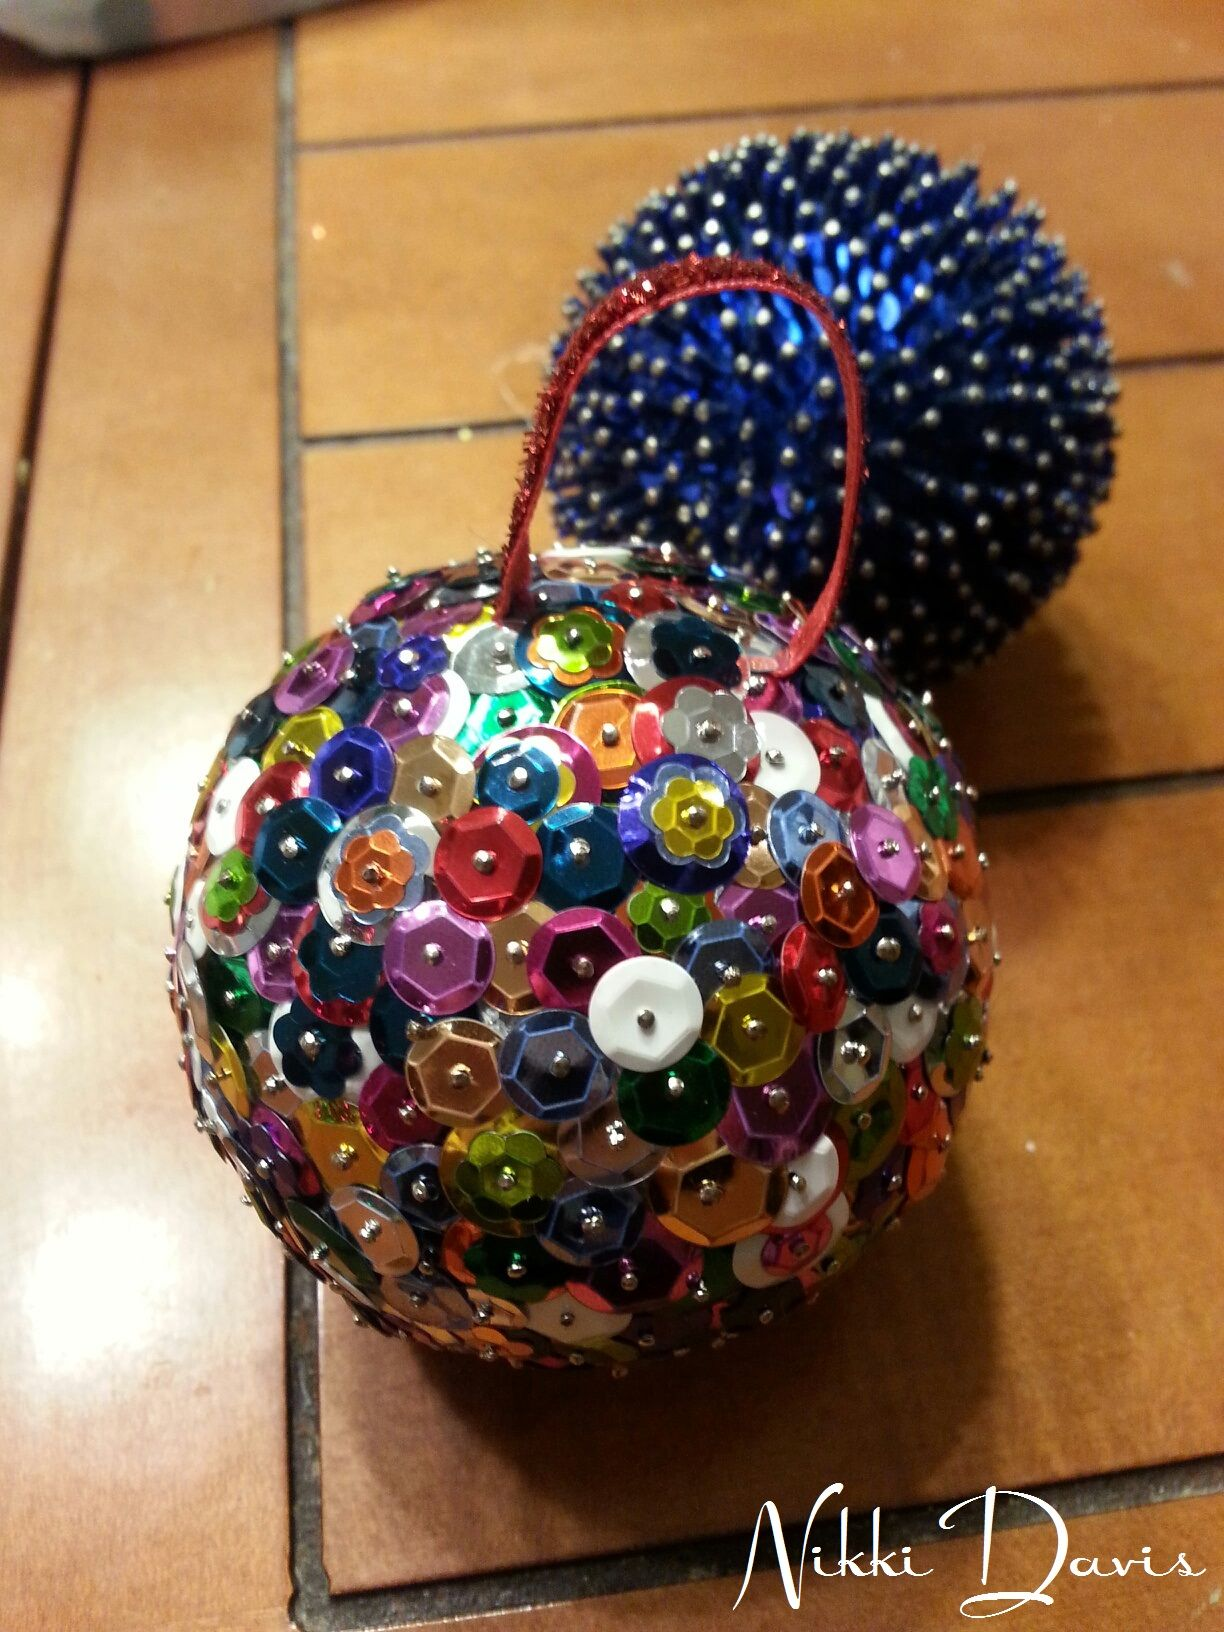 Tonight's DIY Christmas ornament in the foreground. Made